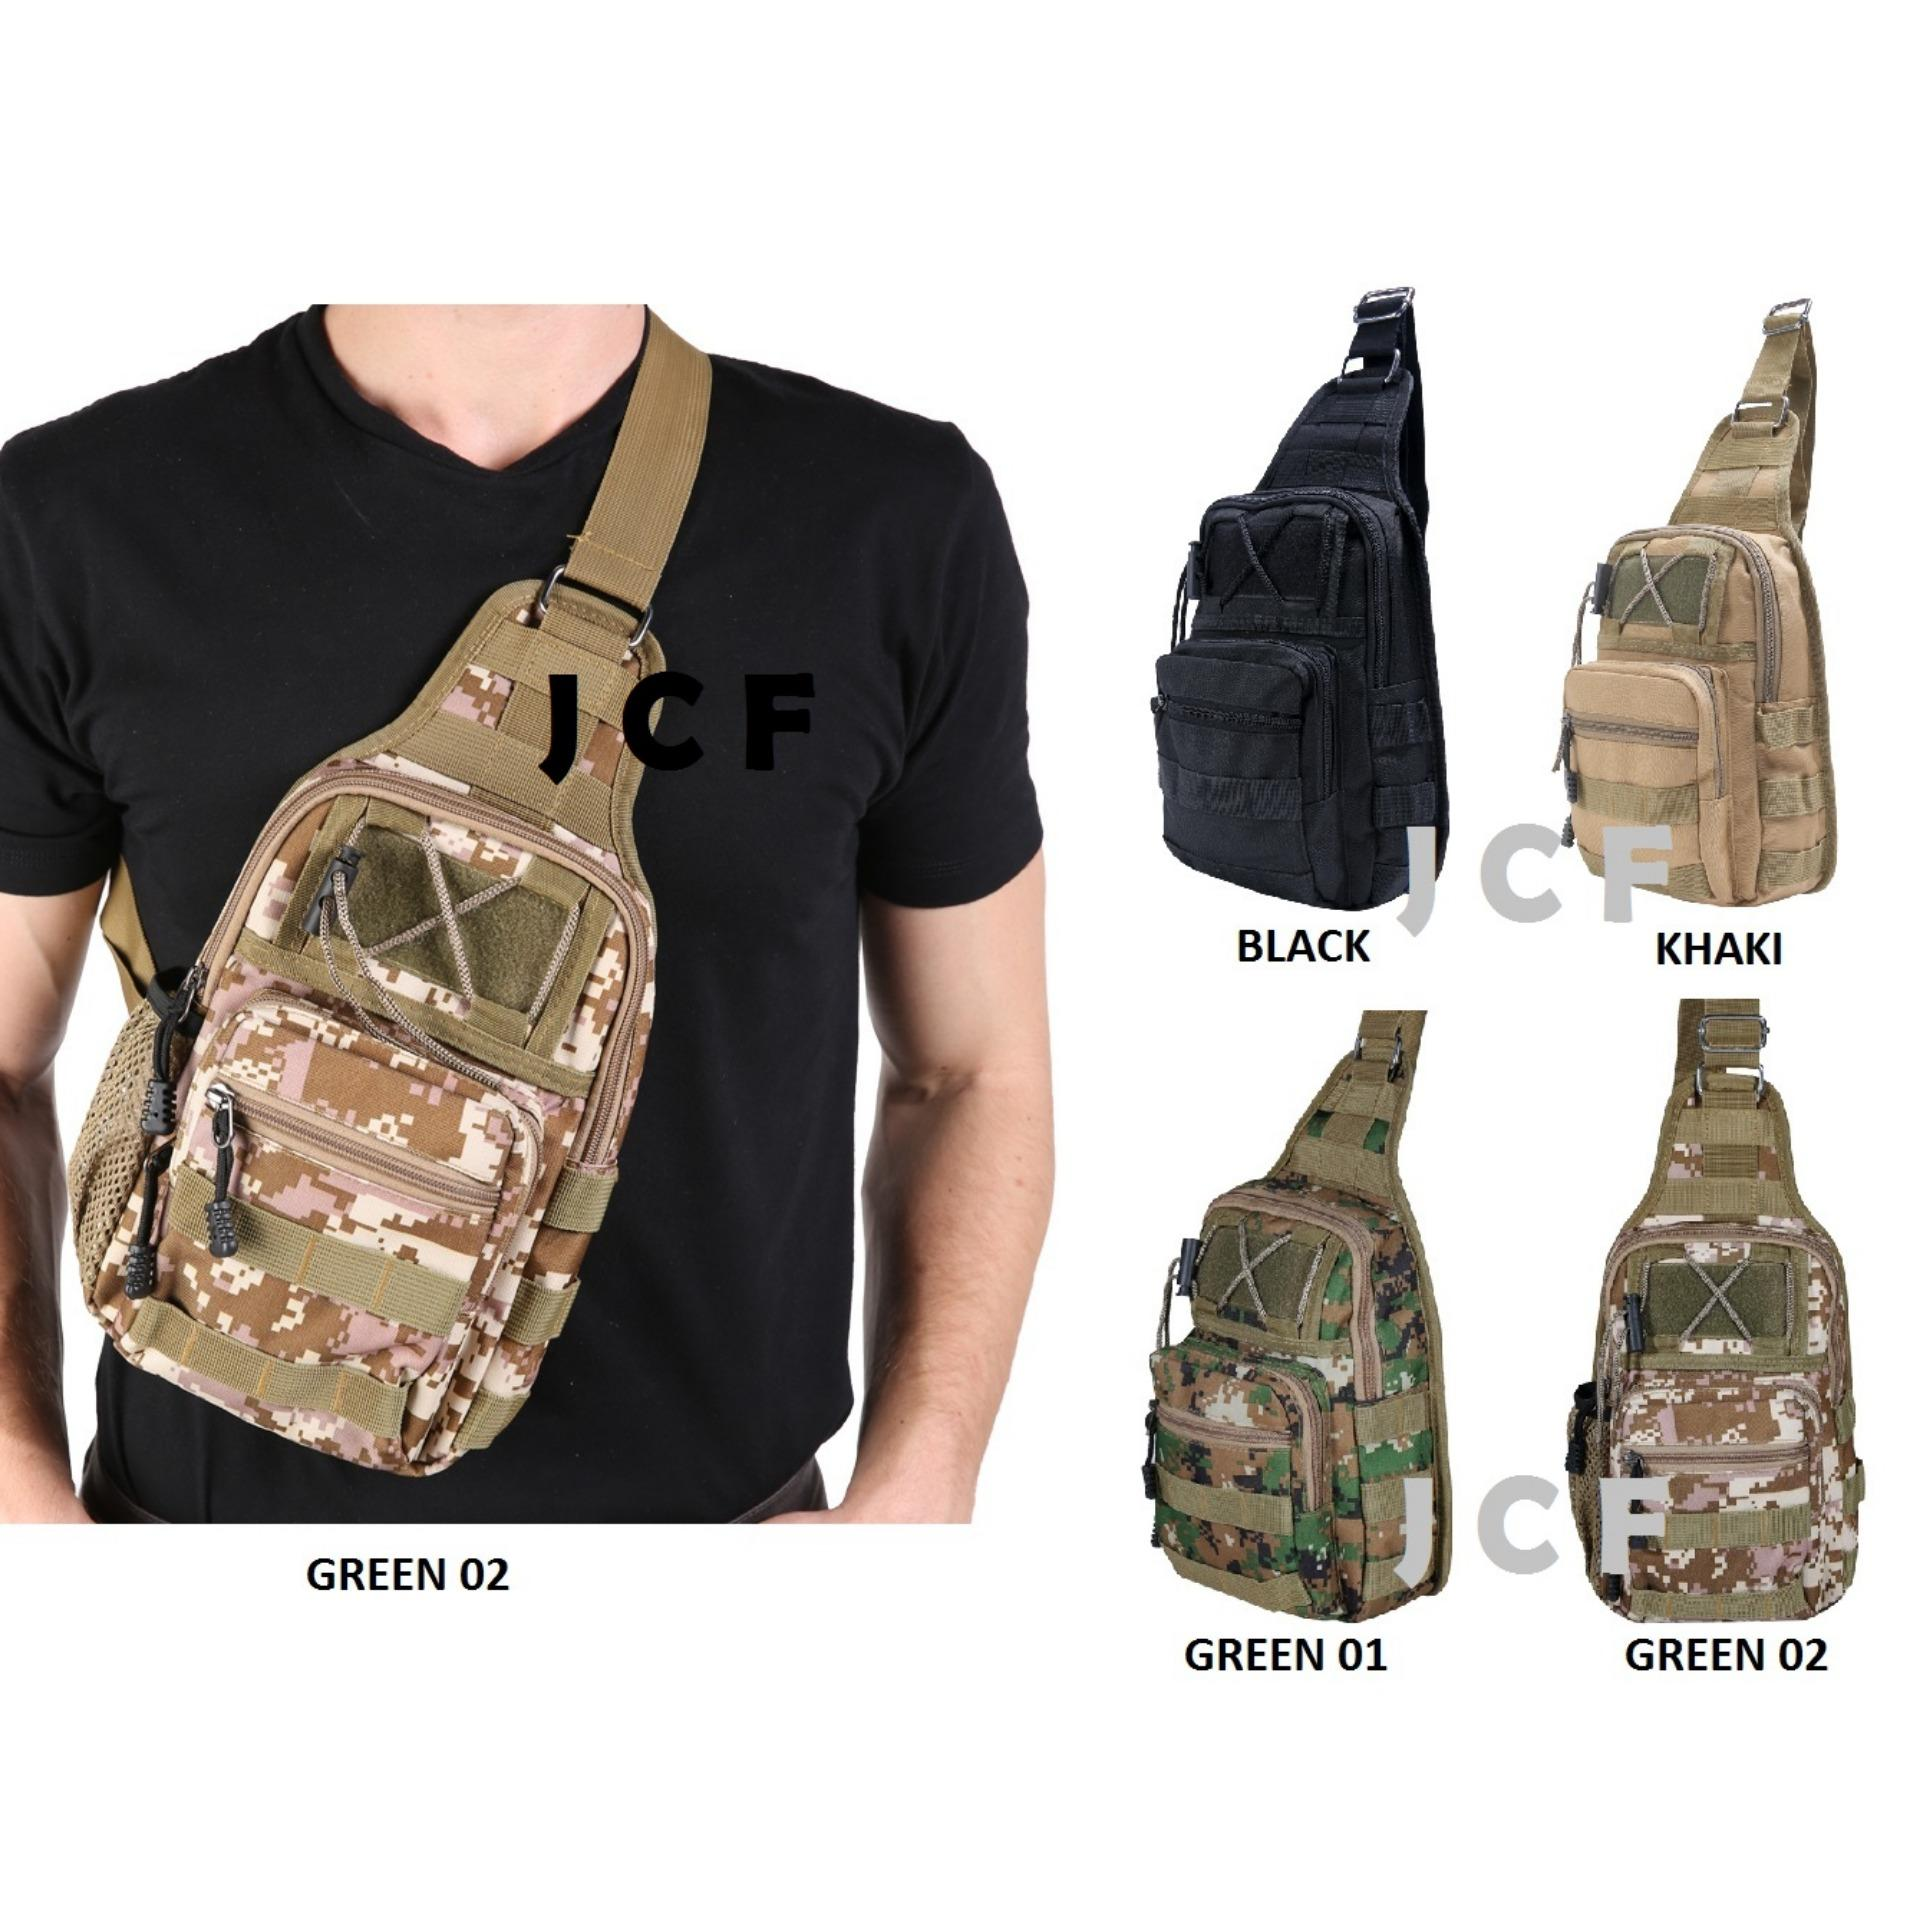 JCF Tas Slempang Import Cowok Pria Army Tactical Sling Waist Messenger  Shoulder Bag . b256eb3fa8